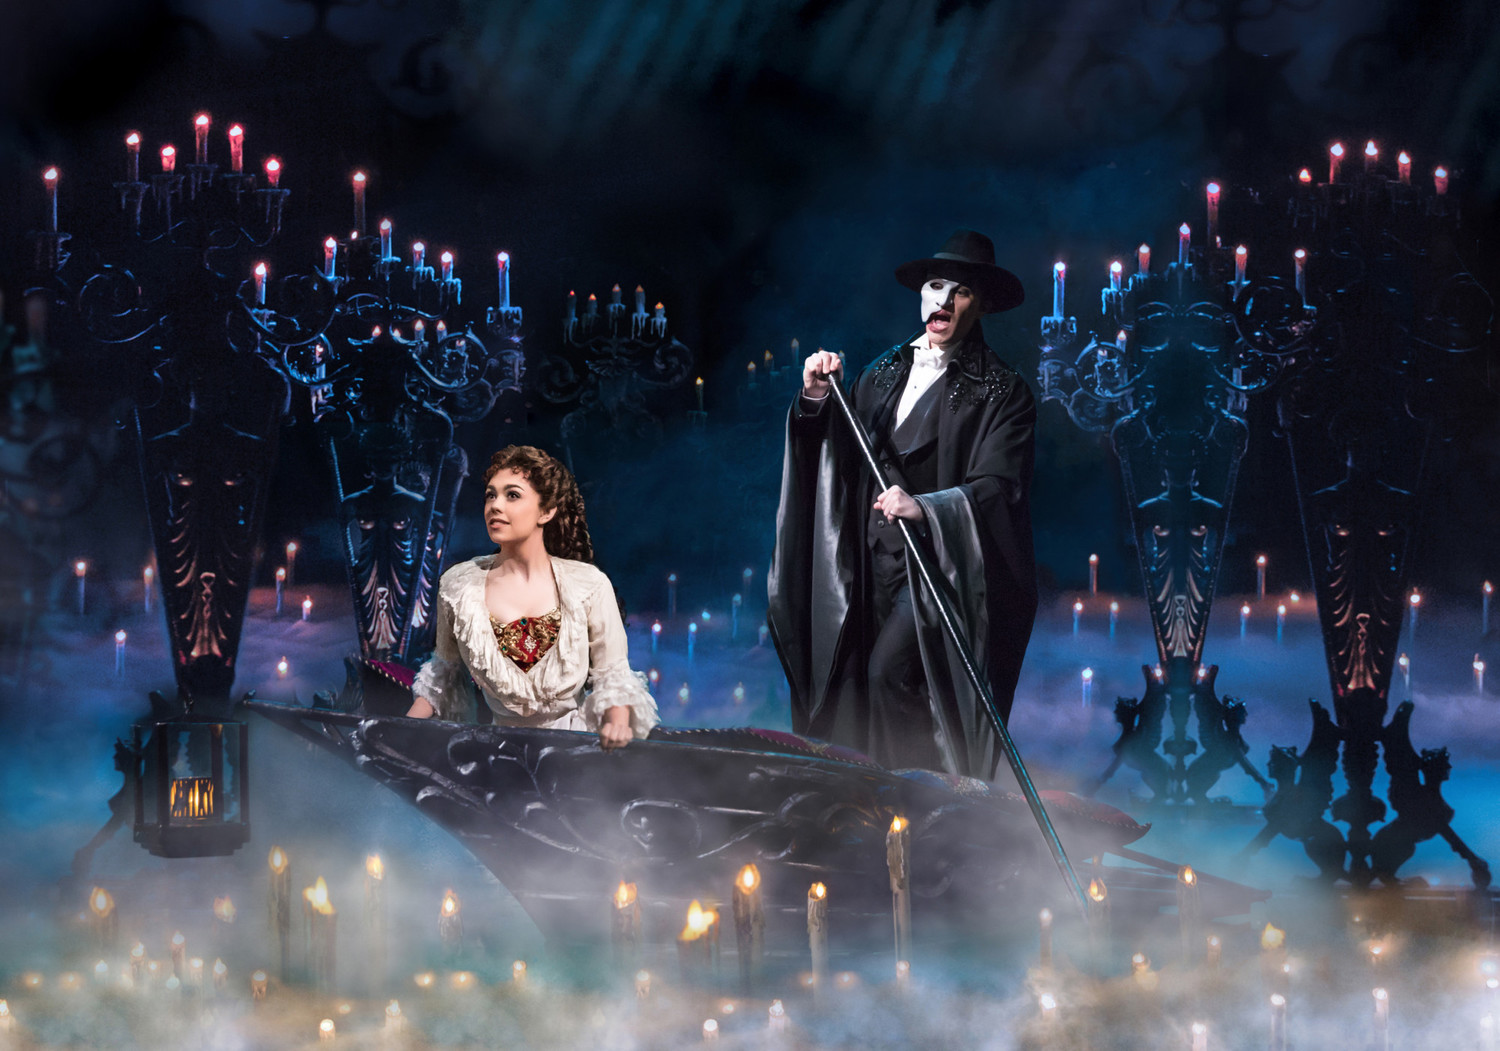 BWW Interview: Xiaoxiao Cao, A CHINESE BALLERINA IN THE PHANTOM OF THE OPERA at Majestic Theatre